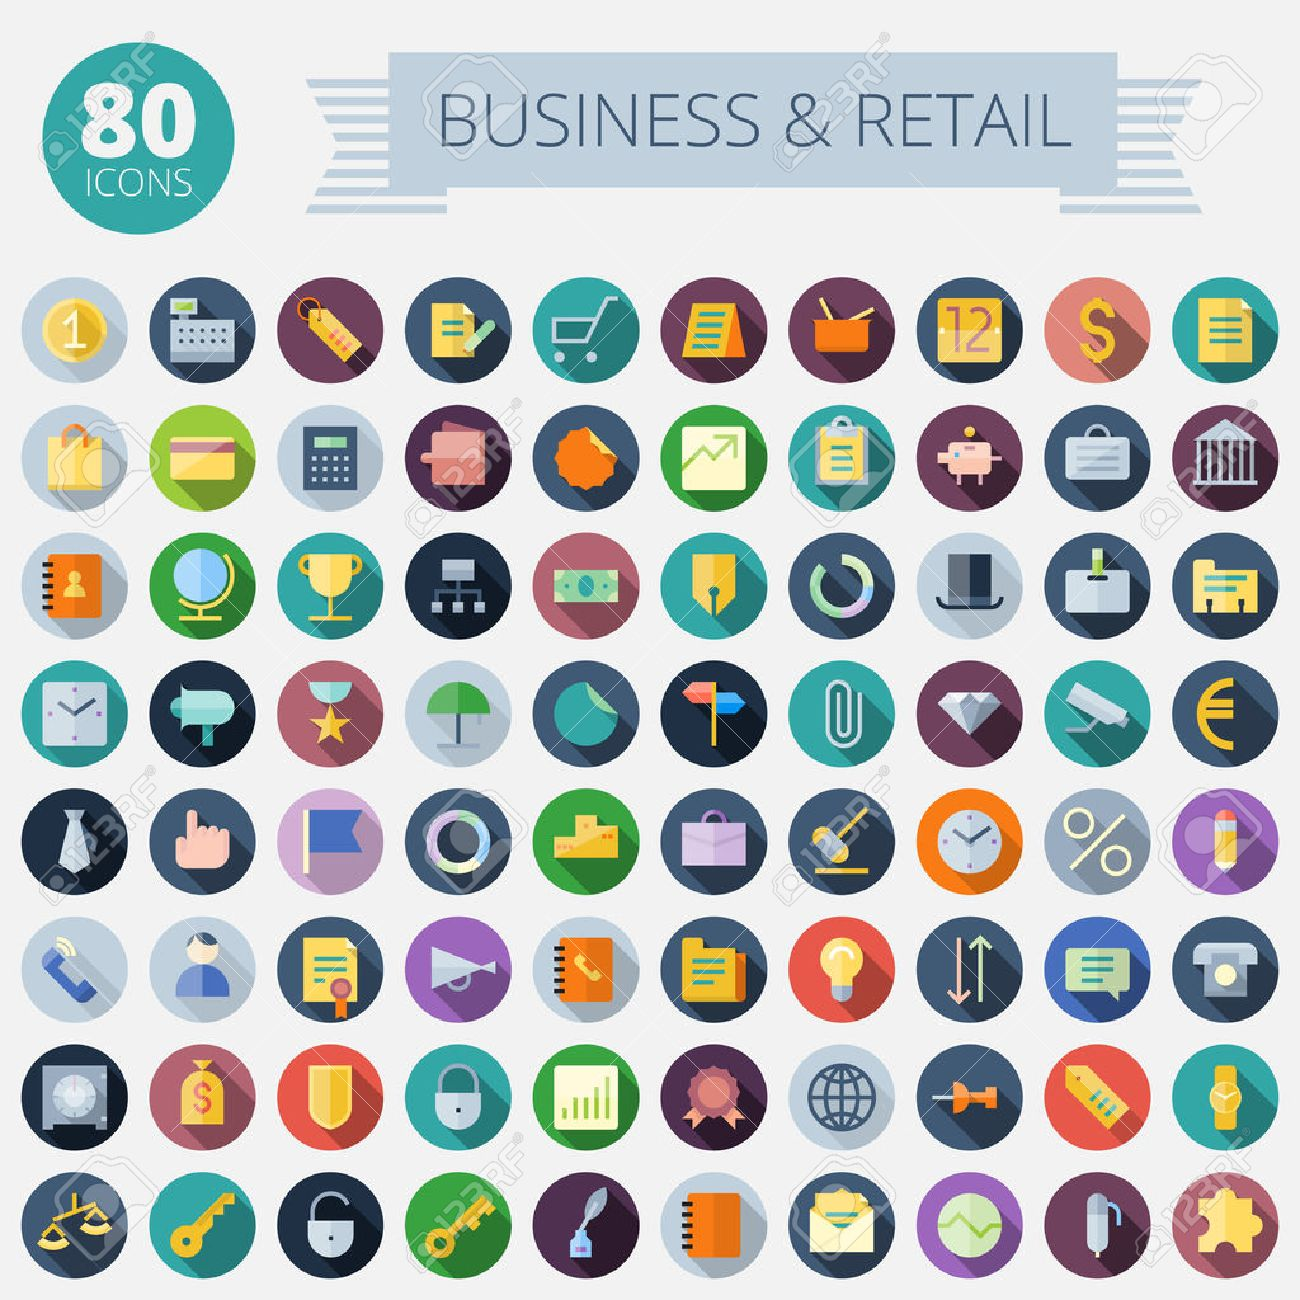 Flat Design Icons For Business, Banking and Retail Easy to recolor Transparent shadows and relief in separate layers - 30218881